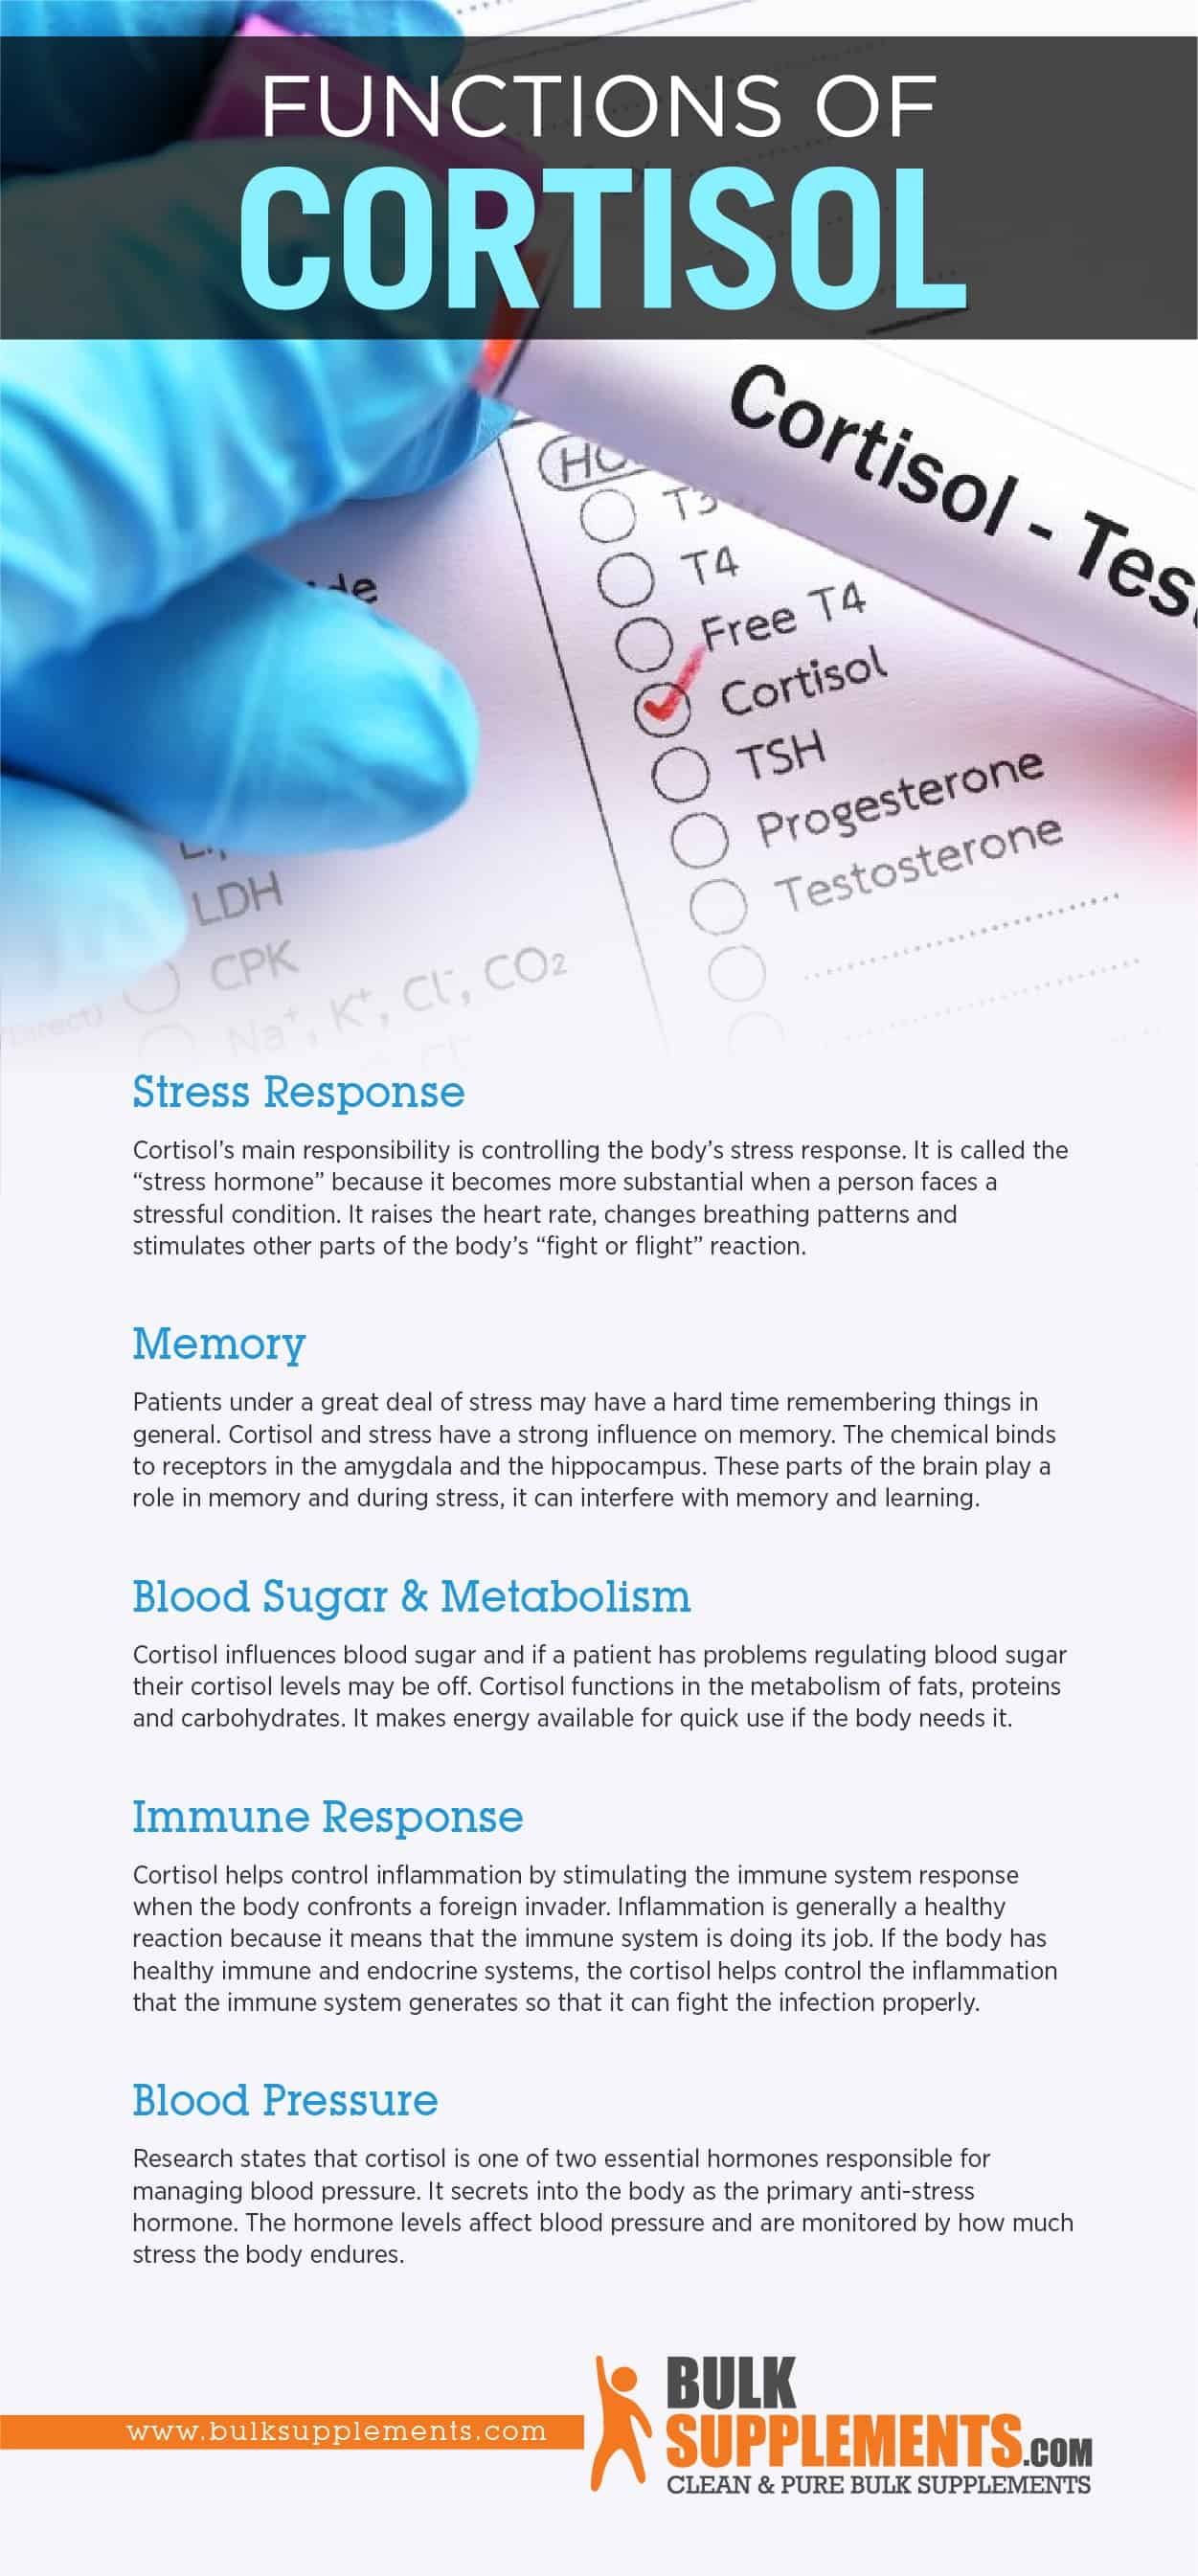 Functions of Cortisol